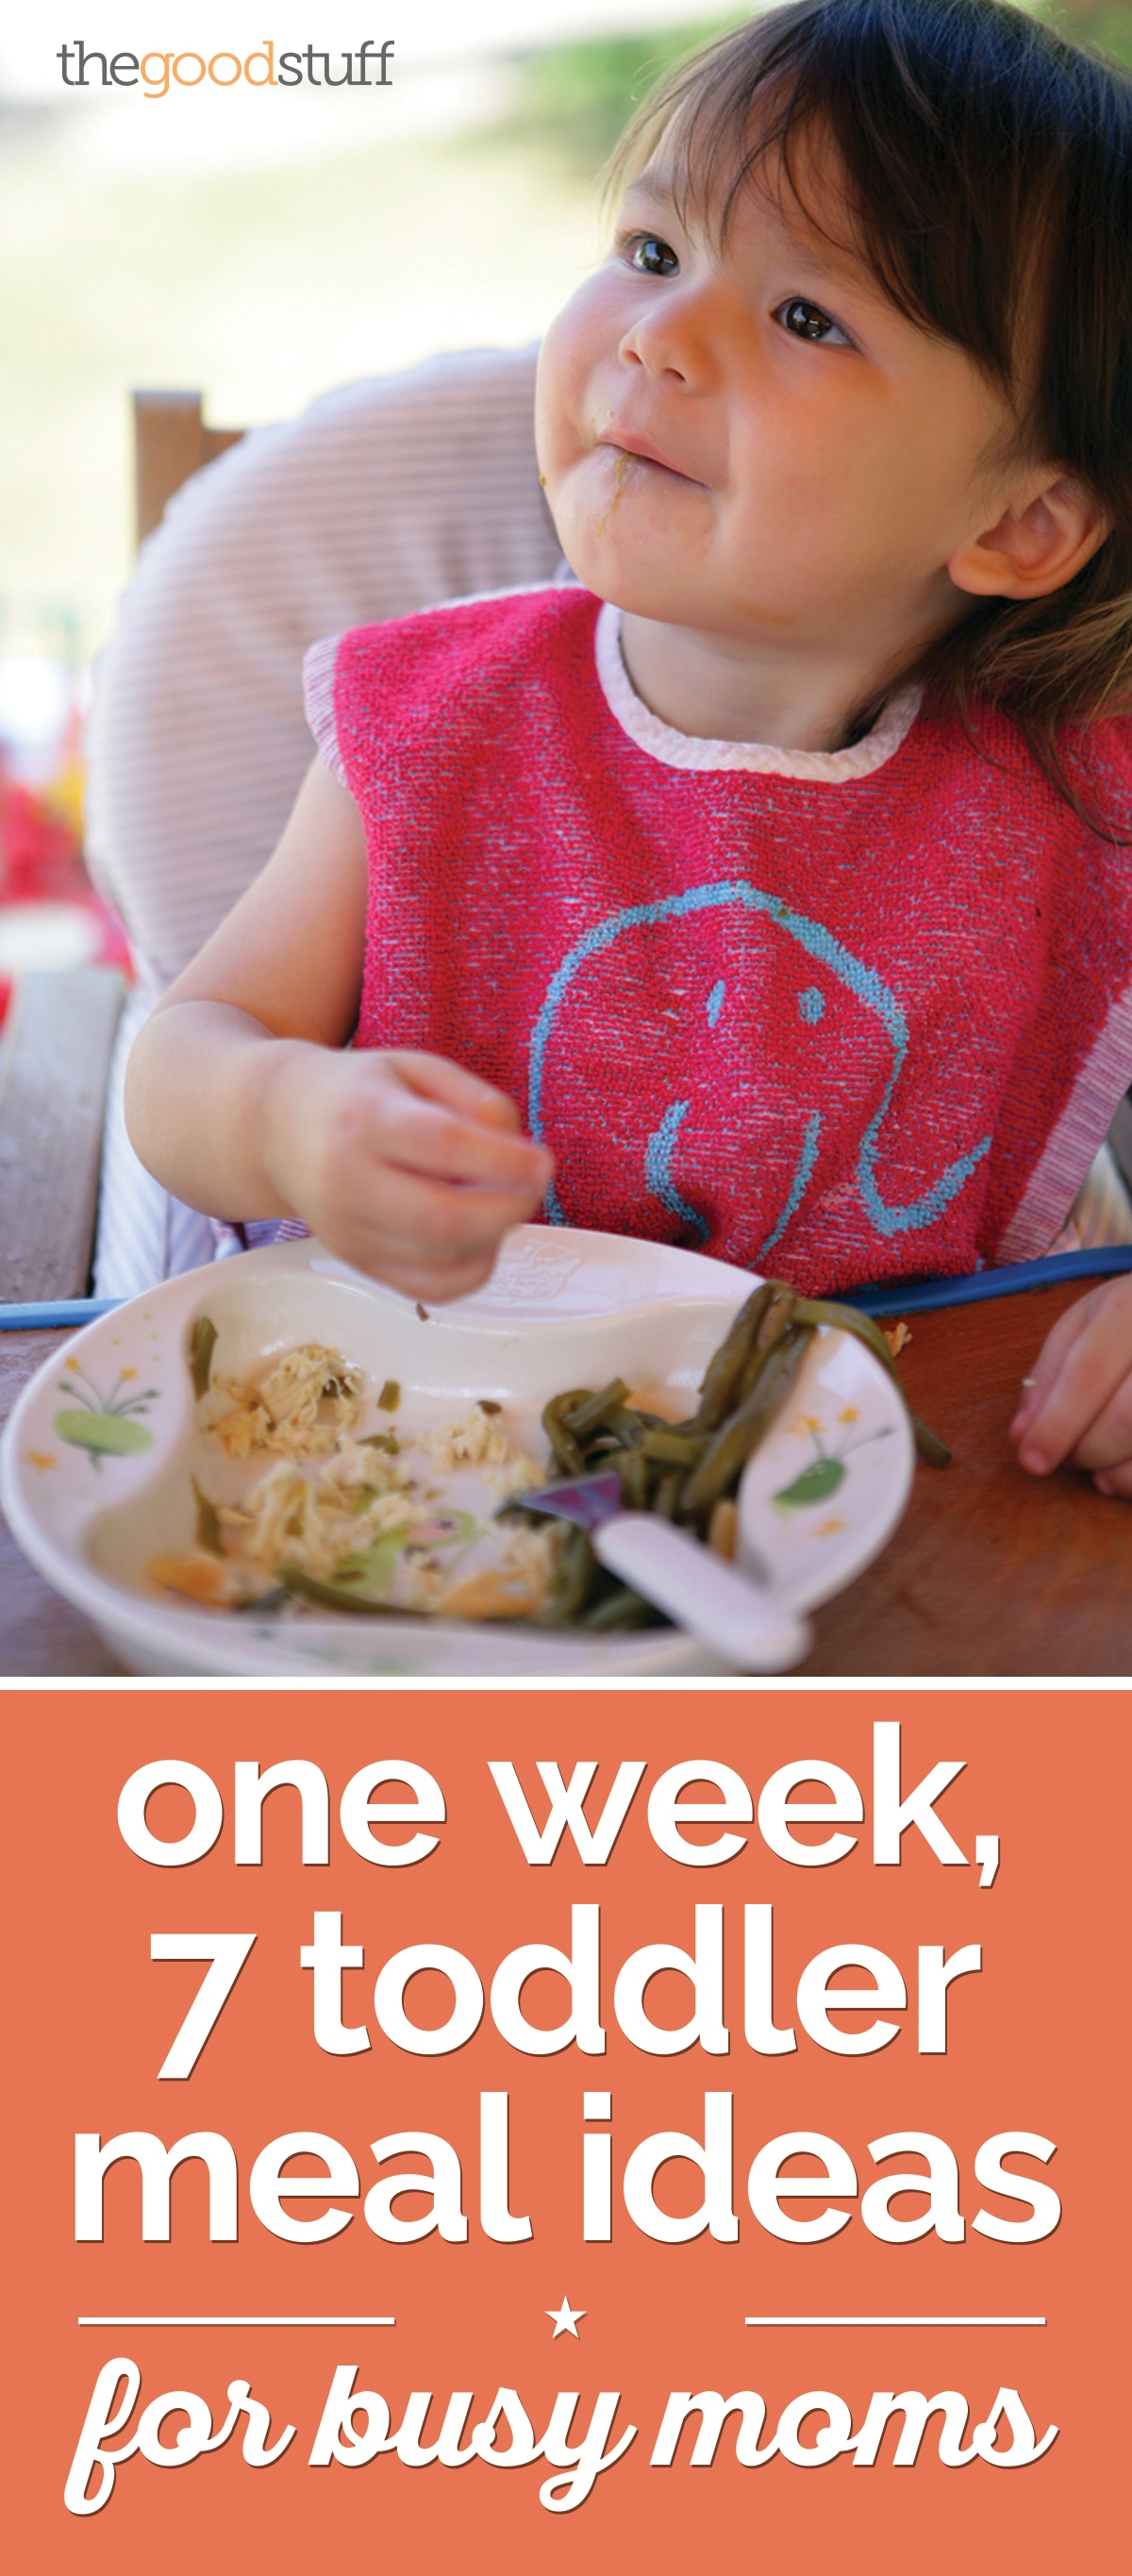 One Week, 7 Toddler Meal Ideas for Busy Moms | thegoodstuff